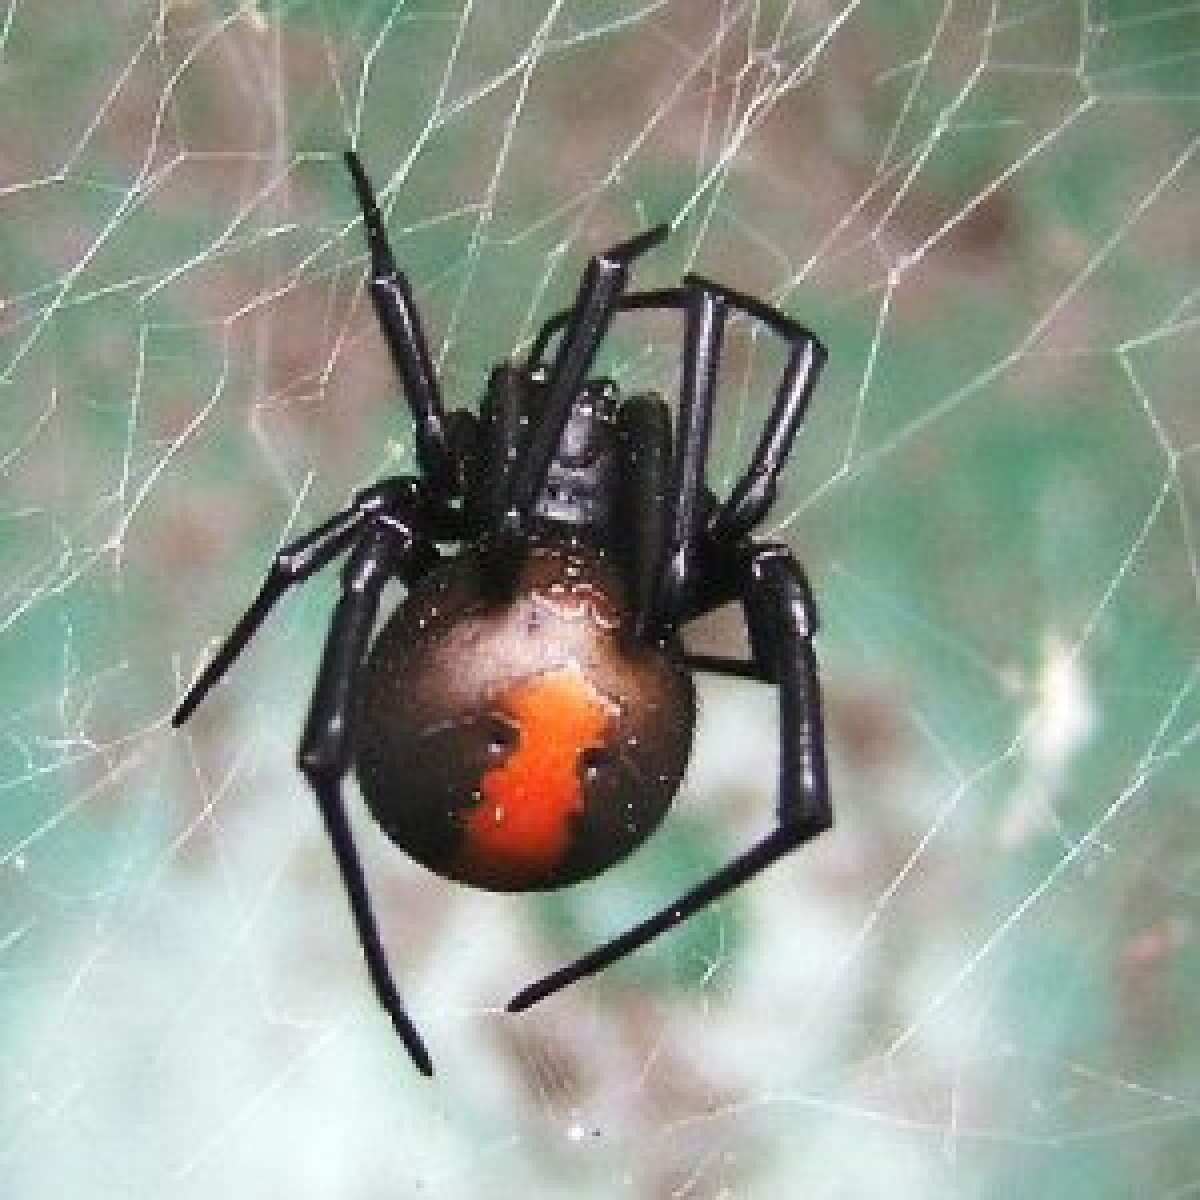 Advice About Spider Bites